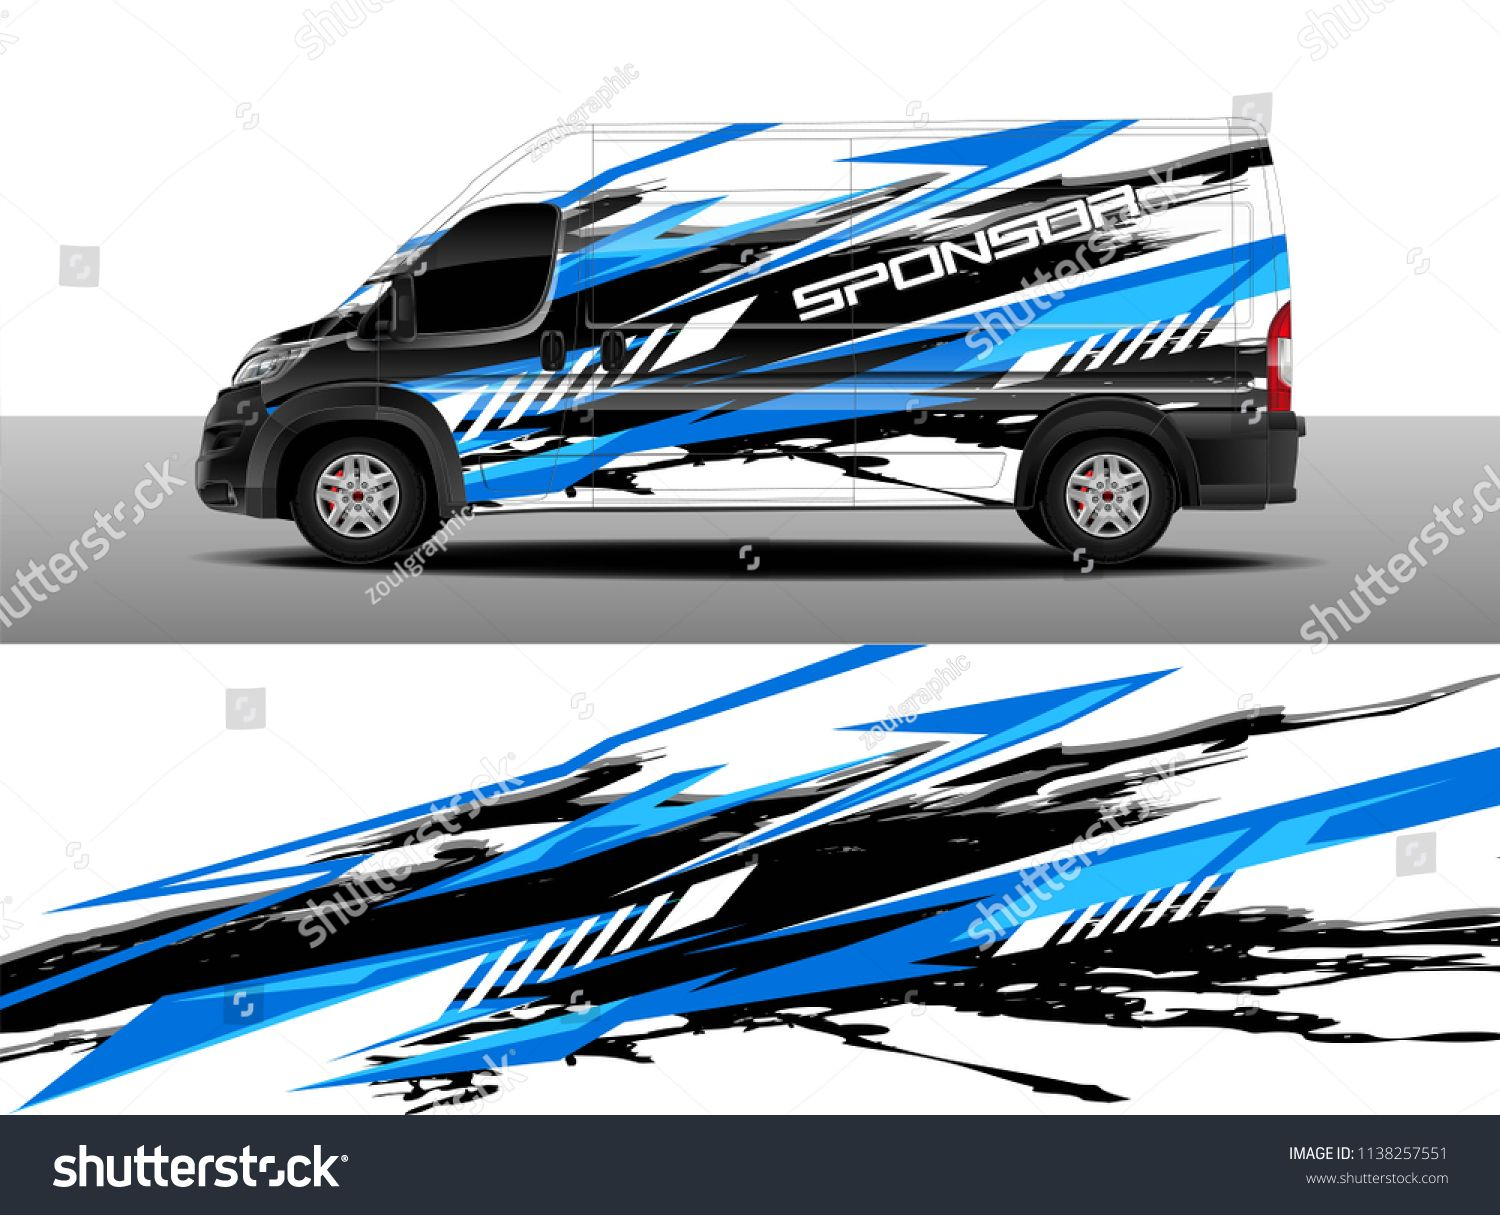 Cargo van decal designs truck and car wrap vector graphic abstract stripe designs for advertisement race adventure and livery car